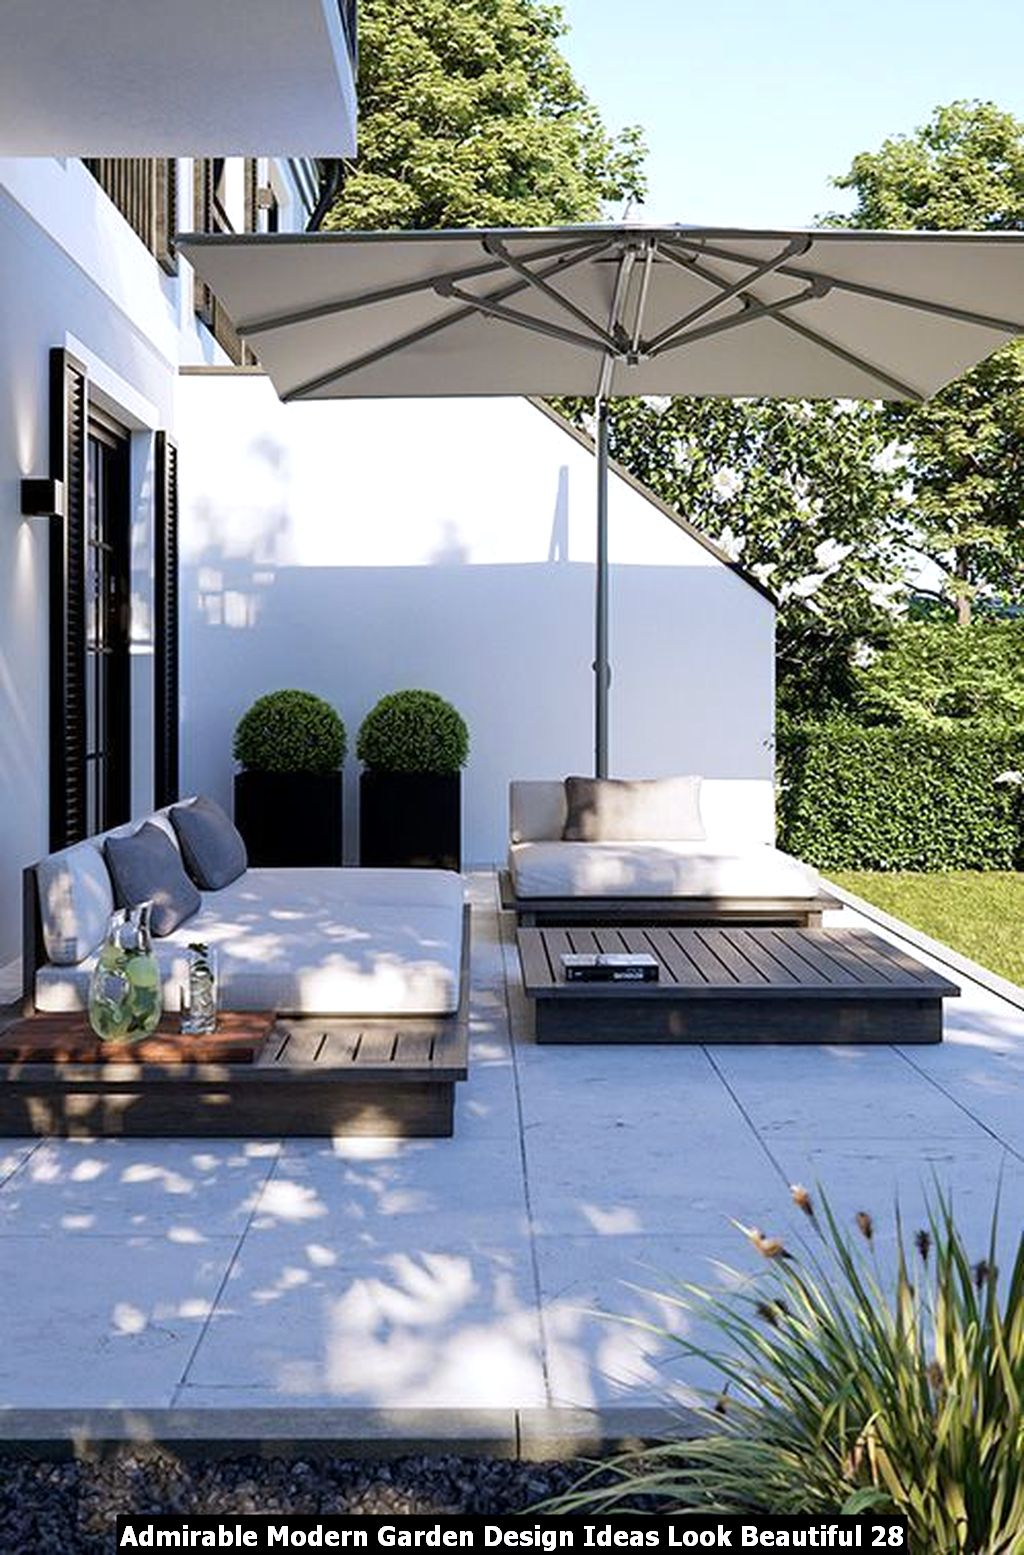 Admirable Modern Garden Design Ideas Look Beautiful 28